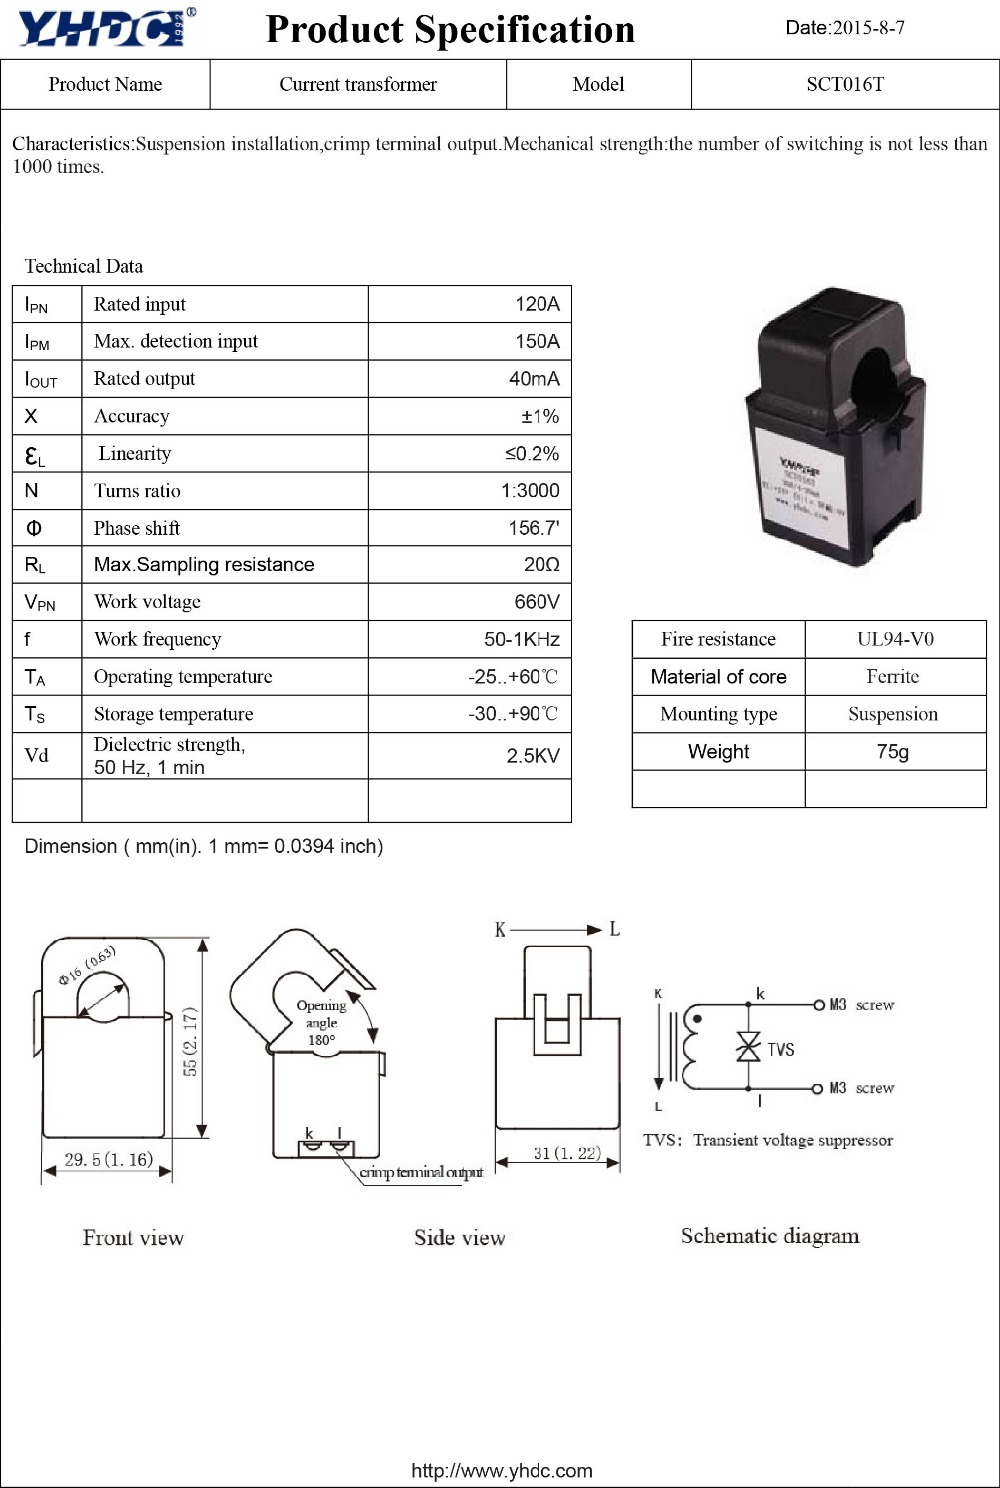 Current Transformer Size Ammeter Selector Switch Connection To Transformers And Yhdc Sct016t Split Core Ac Sensor Open